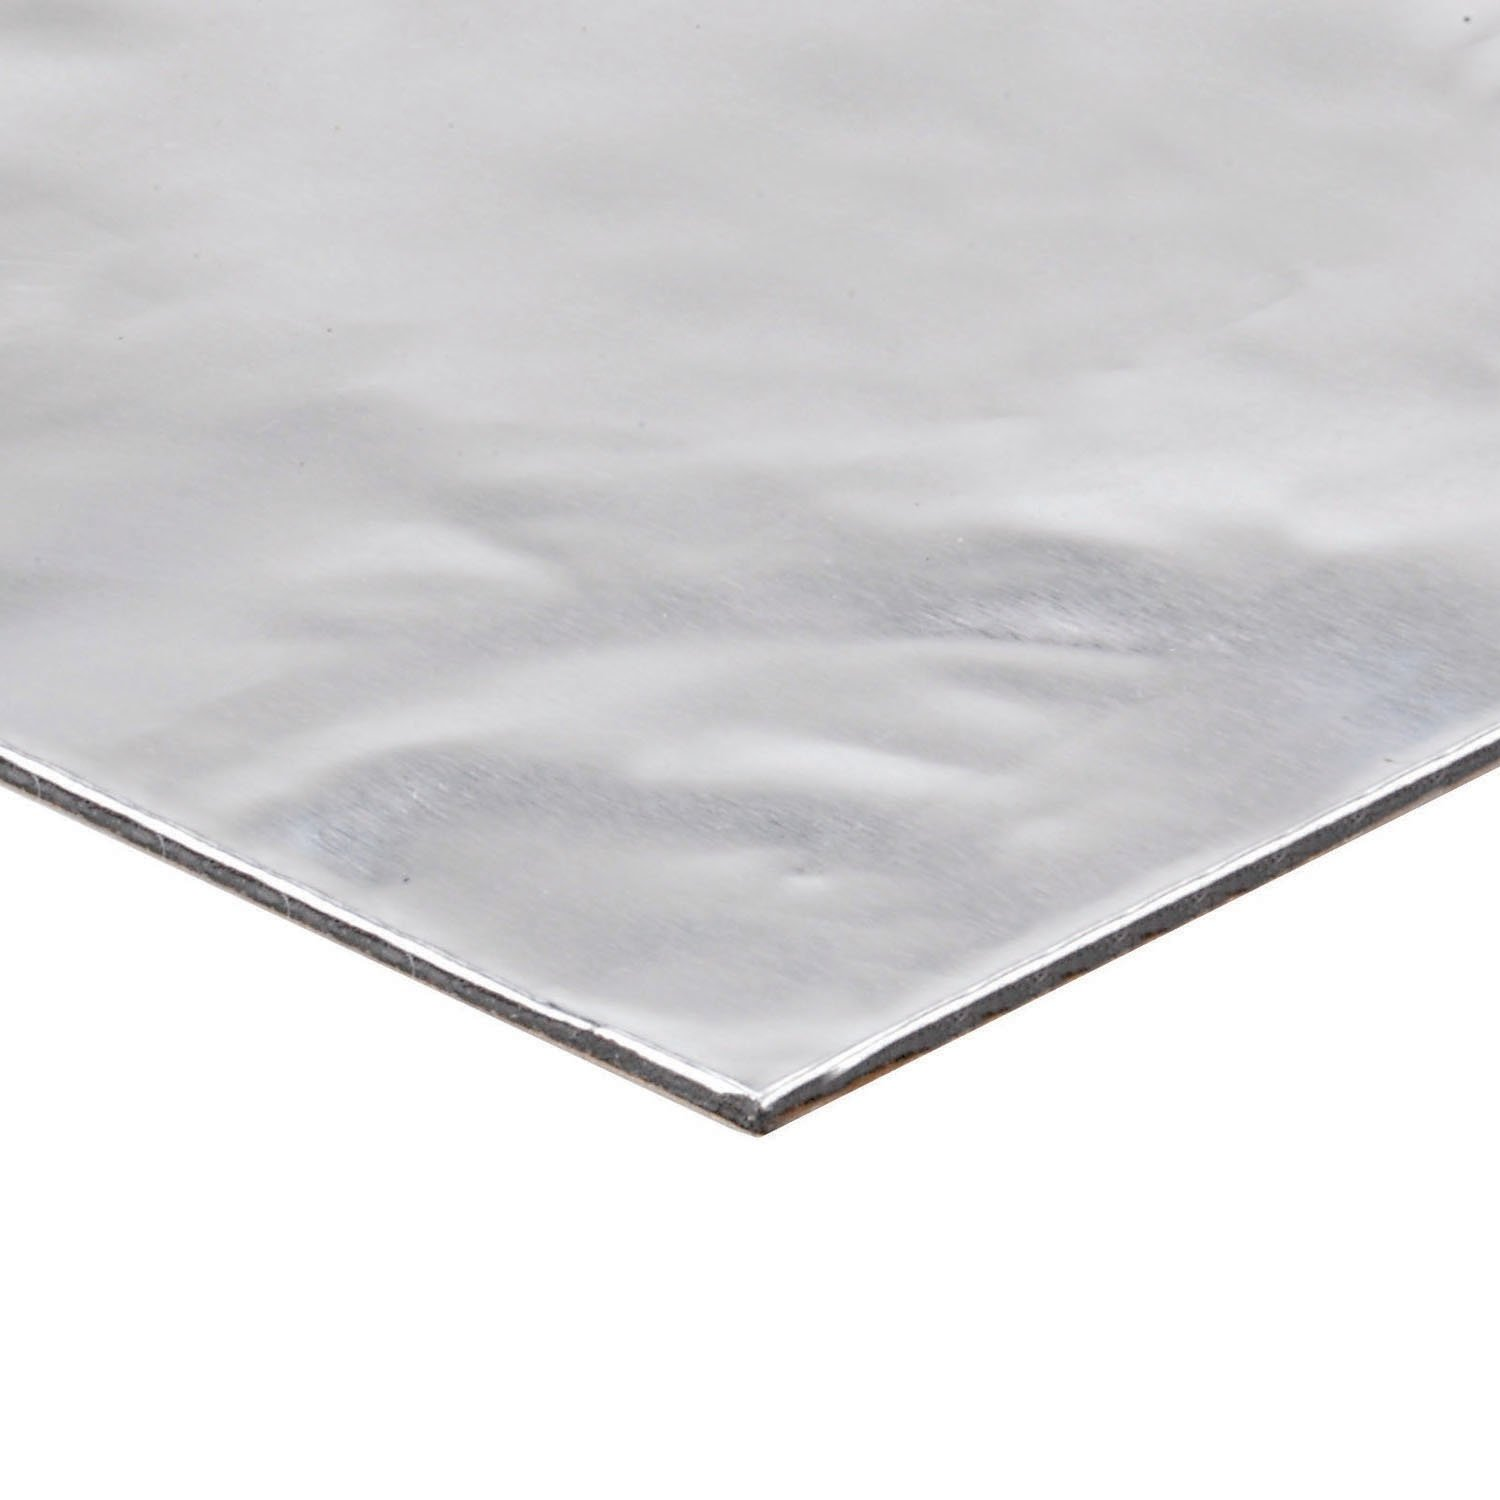 Design Engineering DEI 050204 Boom Mat Sound Damping Material with Adhesive Backing, 12'' x 12.5'' x 2mm (Pack of 8)